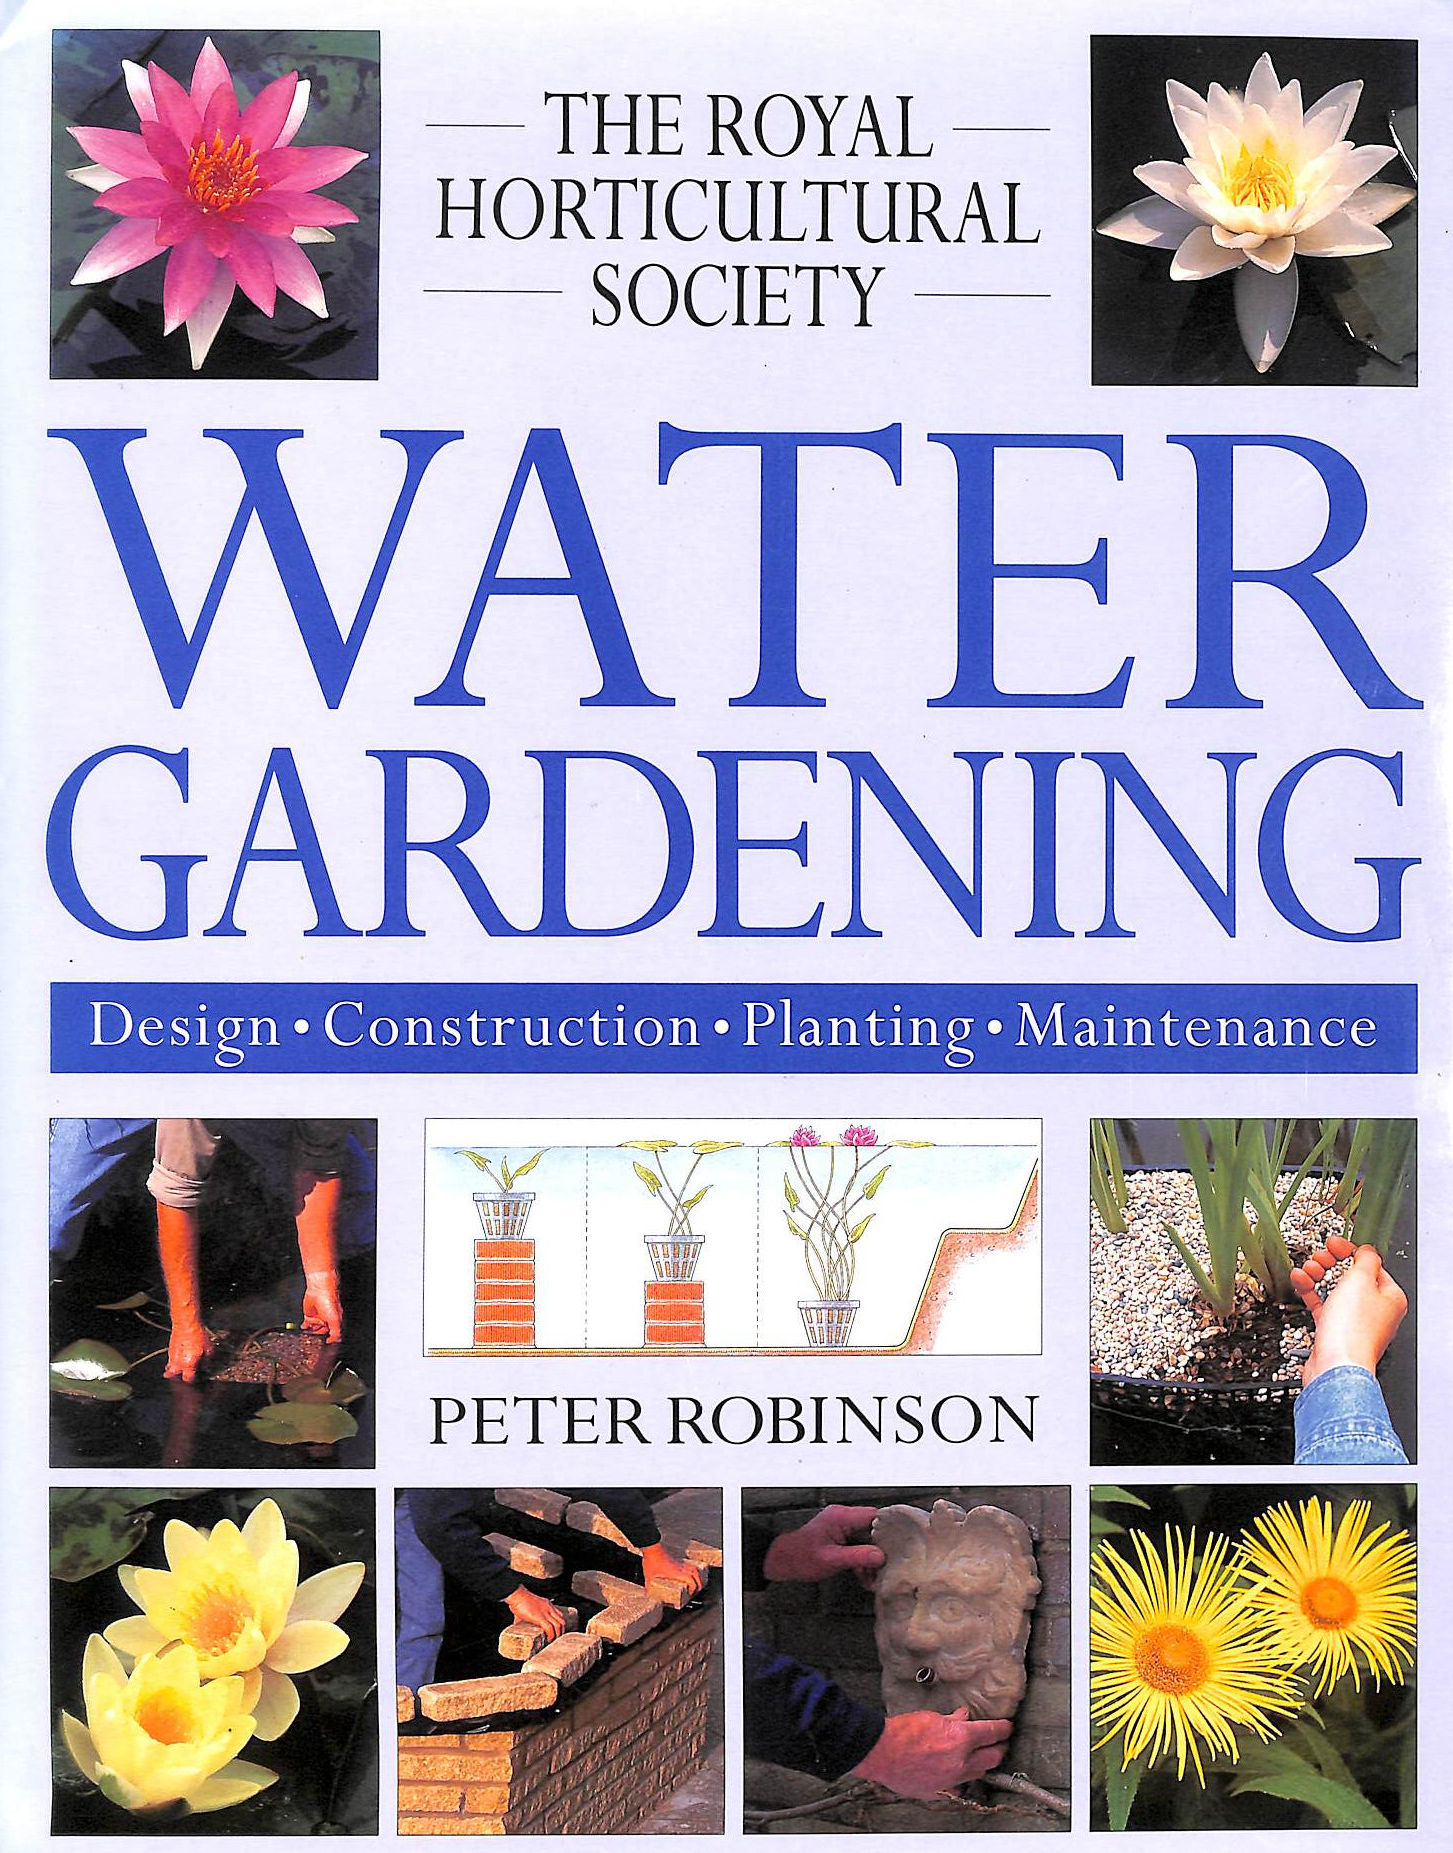 Image for The Royal Horticultural Society Water Gardening (Rhs)